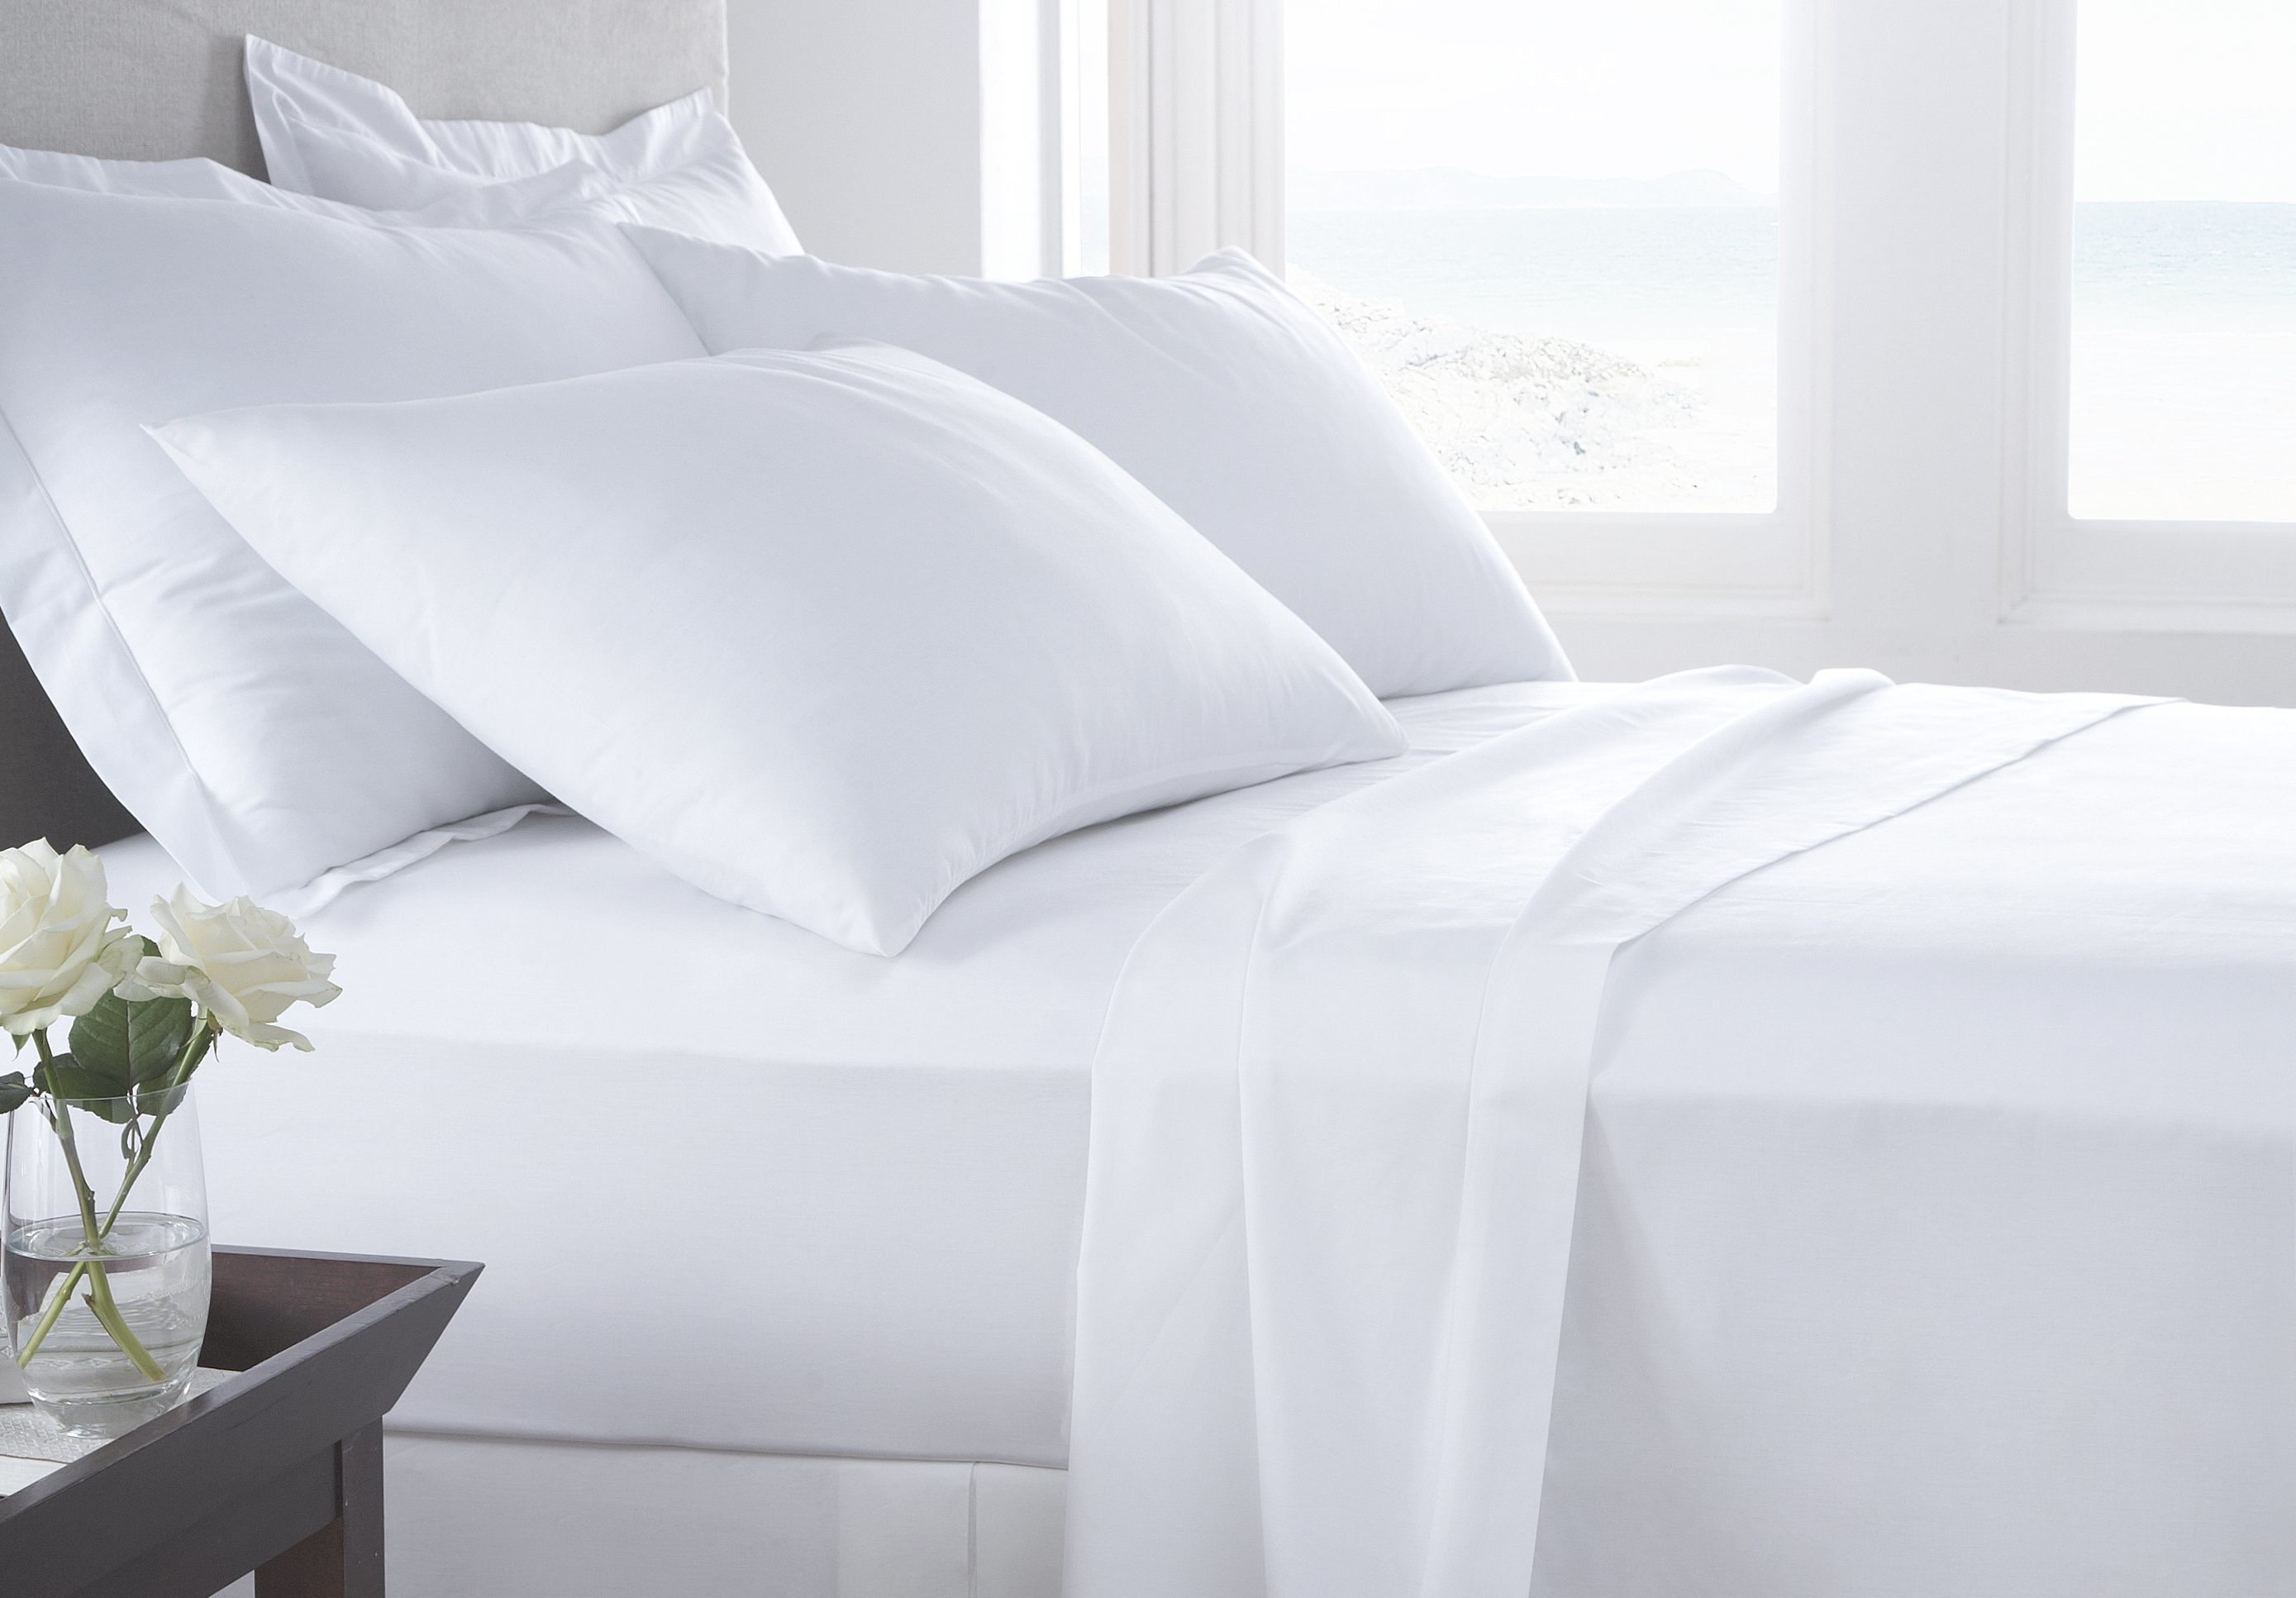 White Hotel Bedding